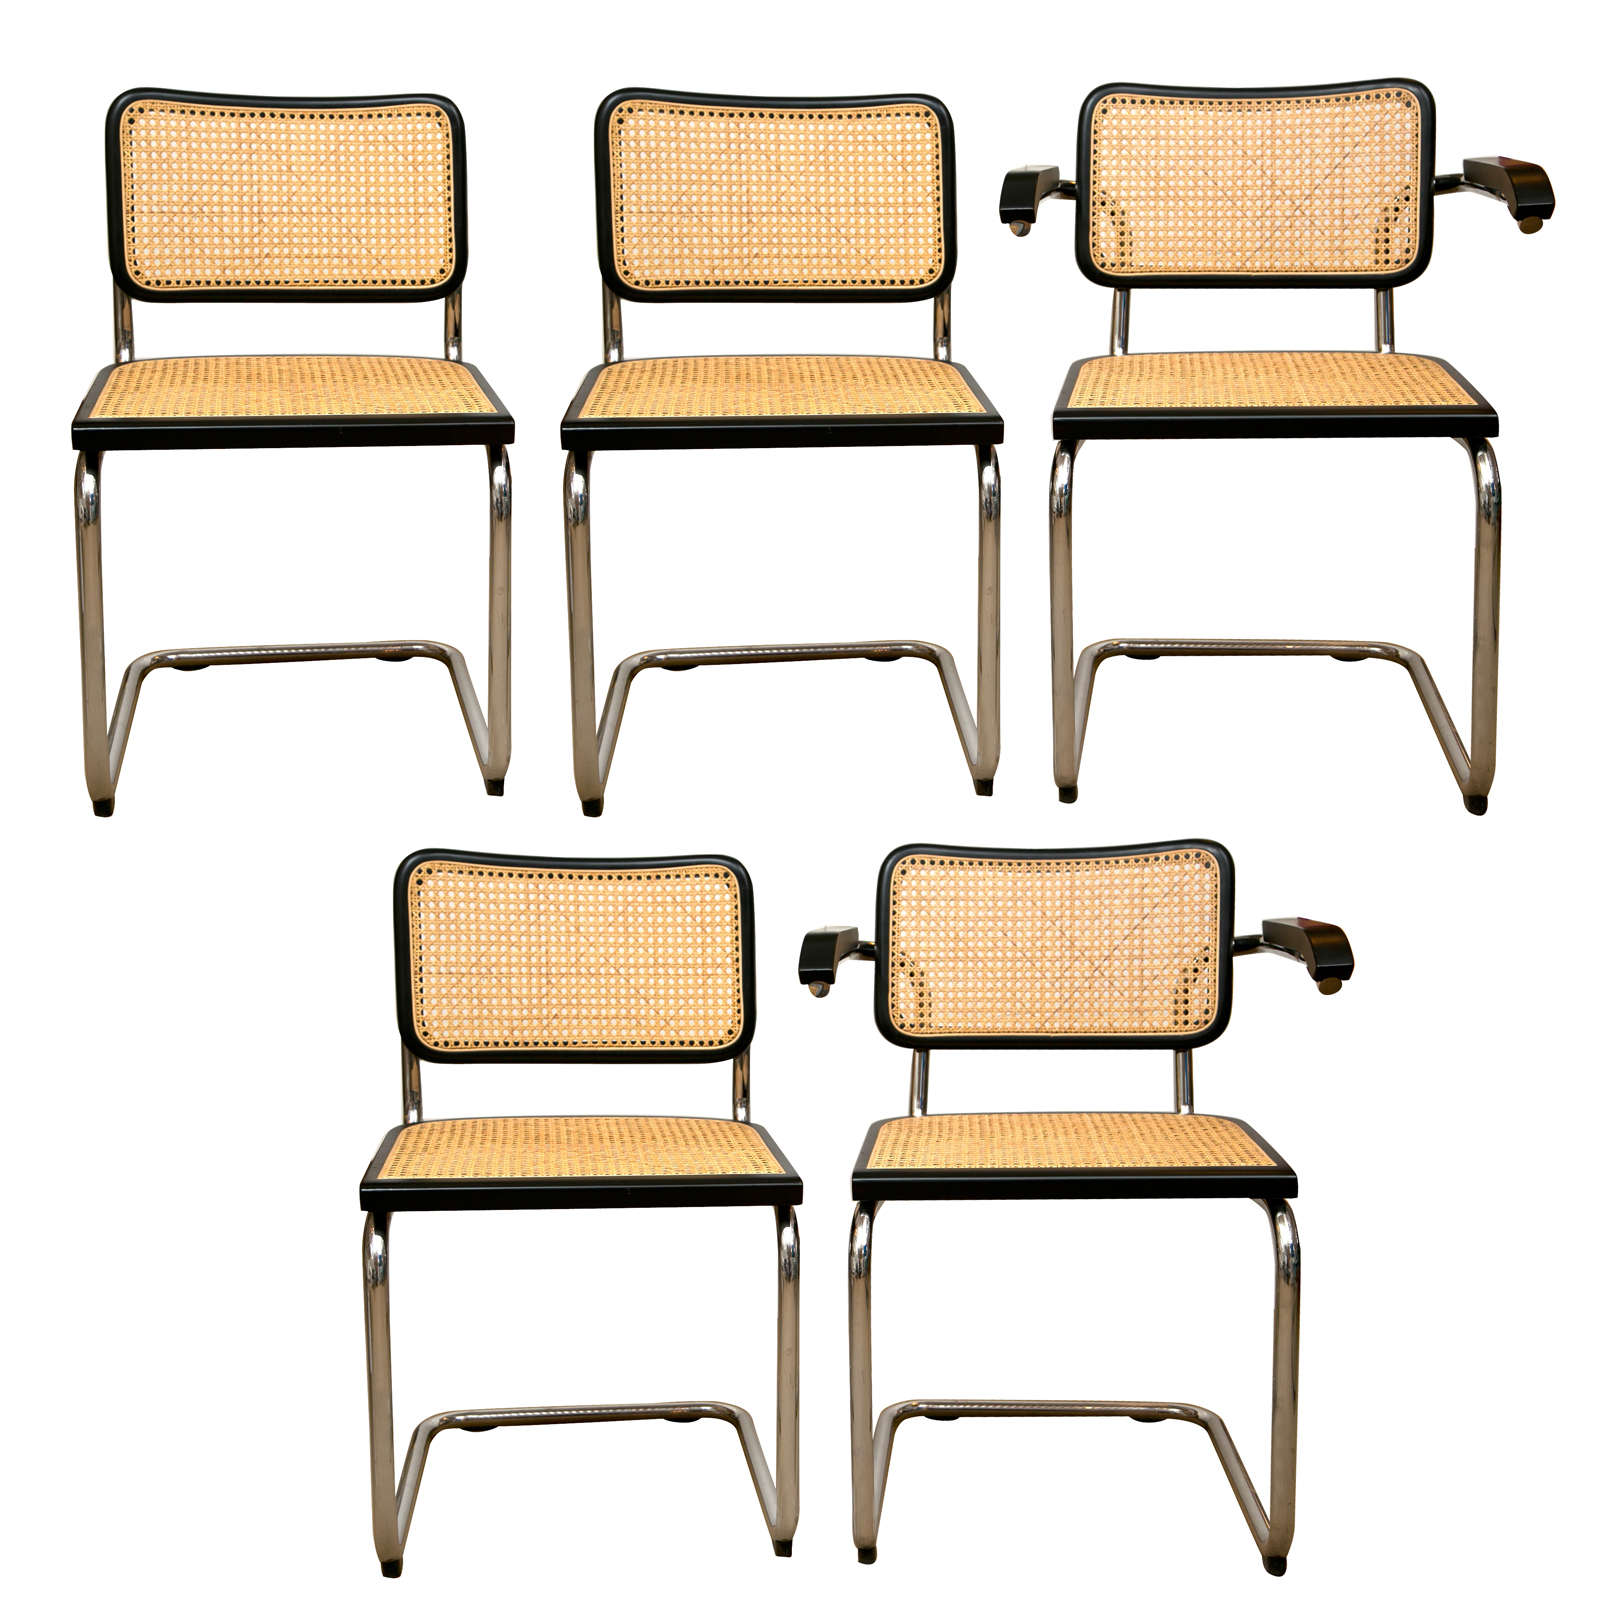 Cesca Chairs by Marcel Breuer 1